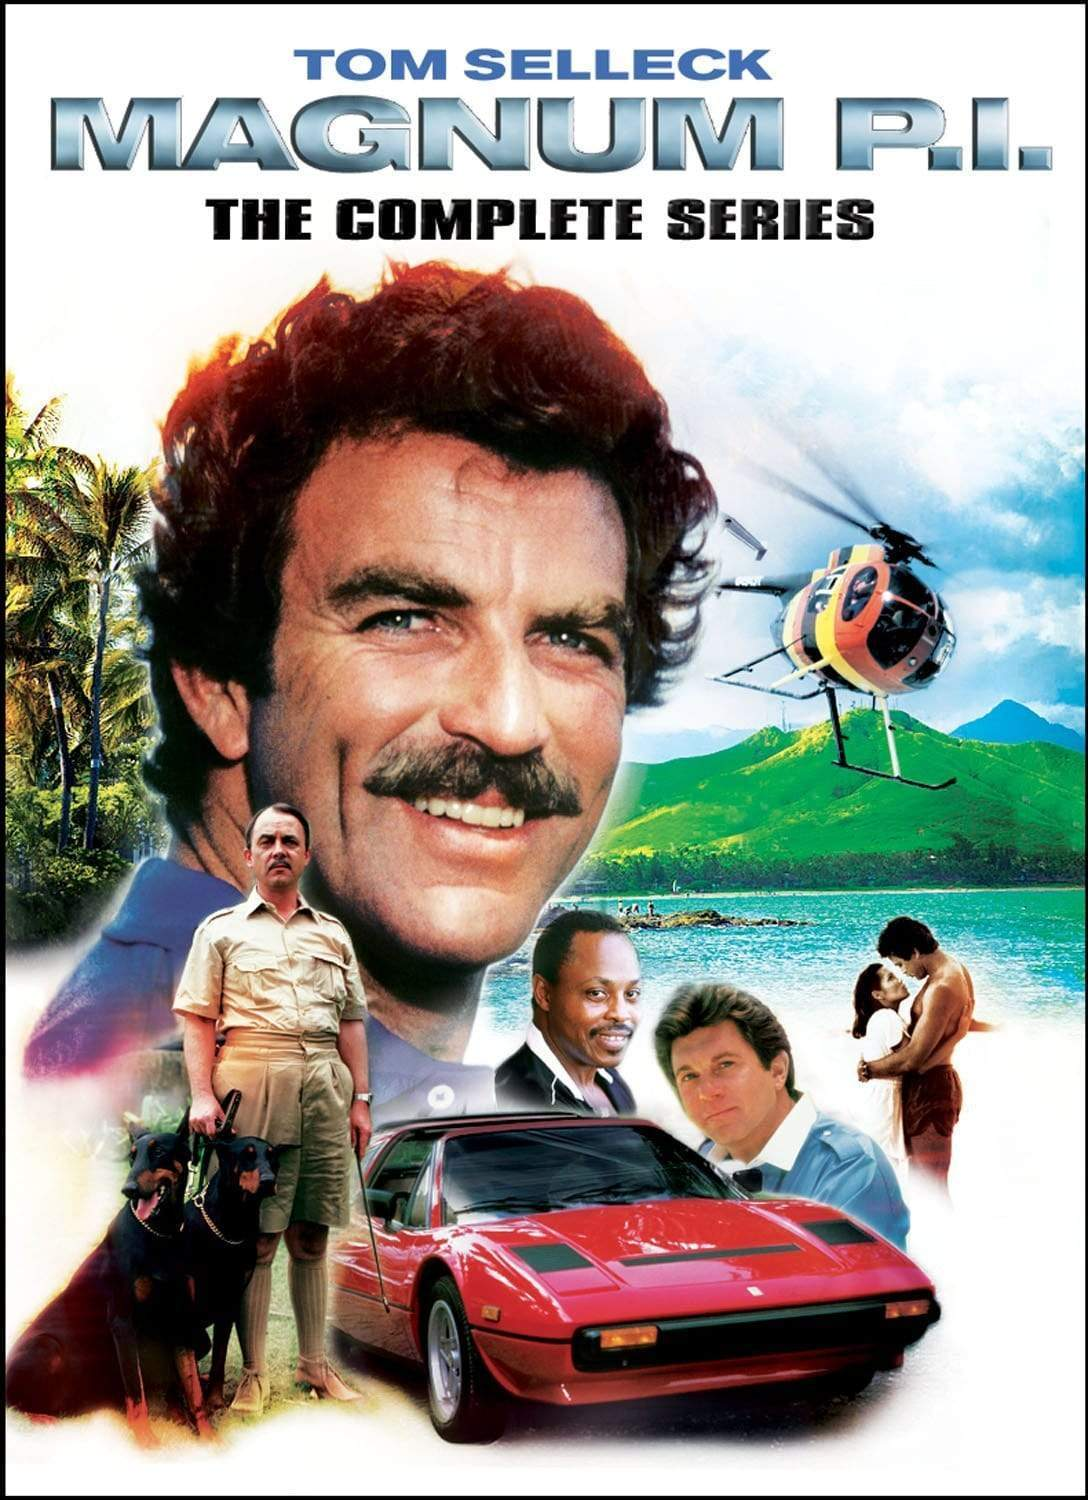 Magnum P.I. DVD Complete Series Box Set Universal Studios DVDs & Blu-ray Discs > DVDs > Box Sets